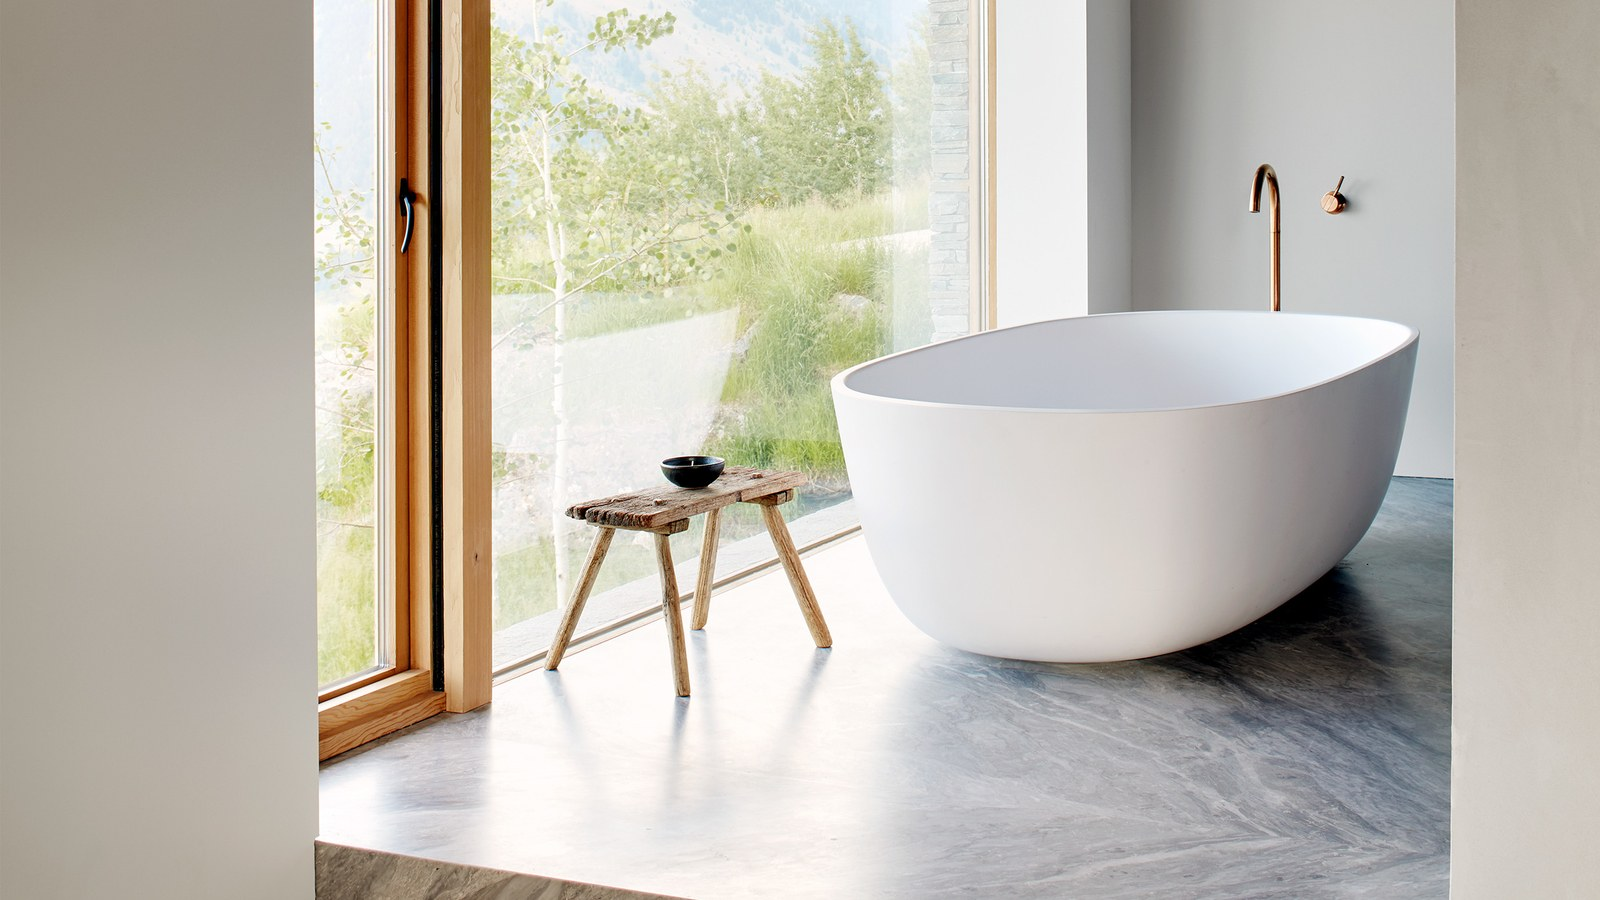 architectural digest Best of 2019: Great Bath Design Awards by Architectural Digest Great Design Awards  Embracing Natural Materials 1